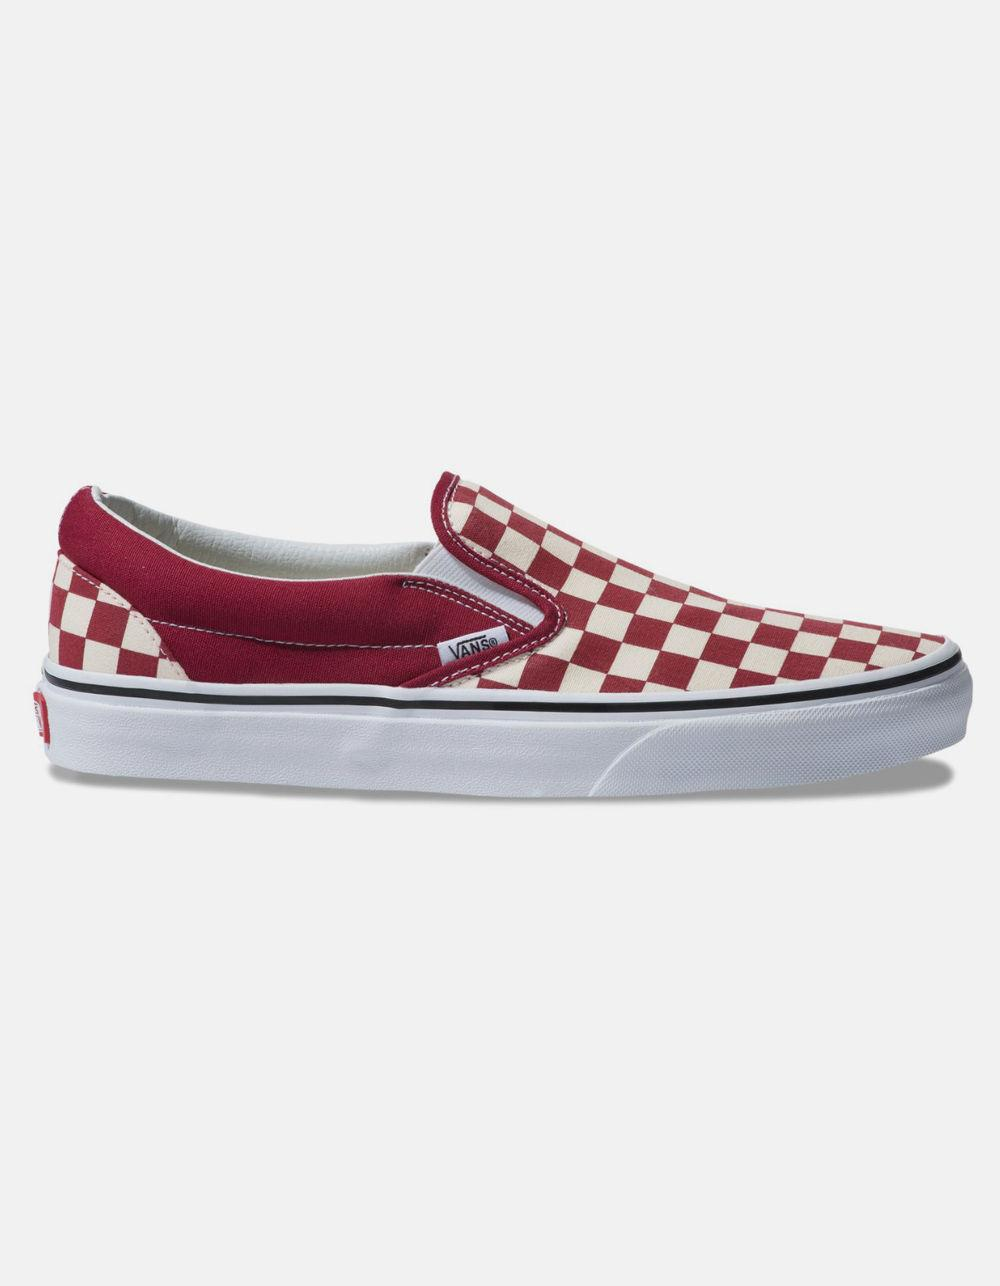 5686852ace Lyst - Vans Checkerboard Classic Slip-on Rumba Red   True White ...